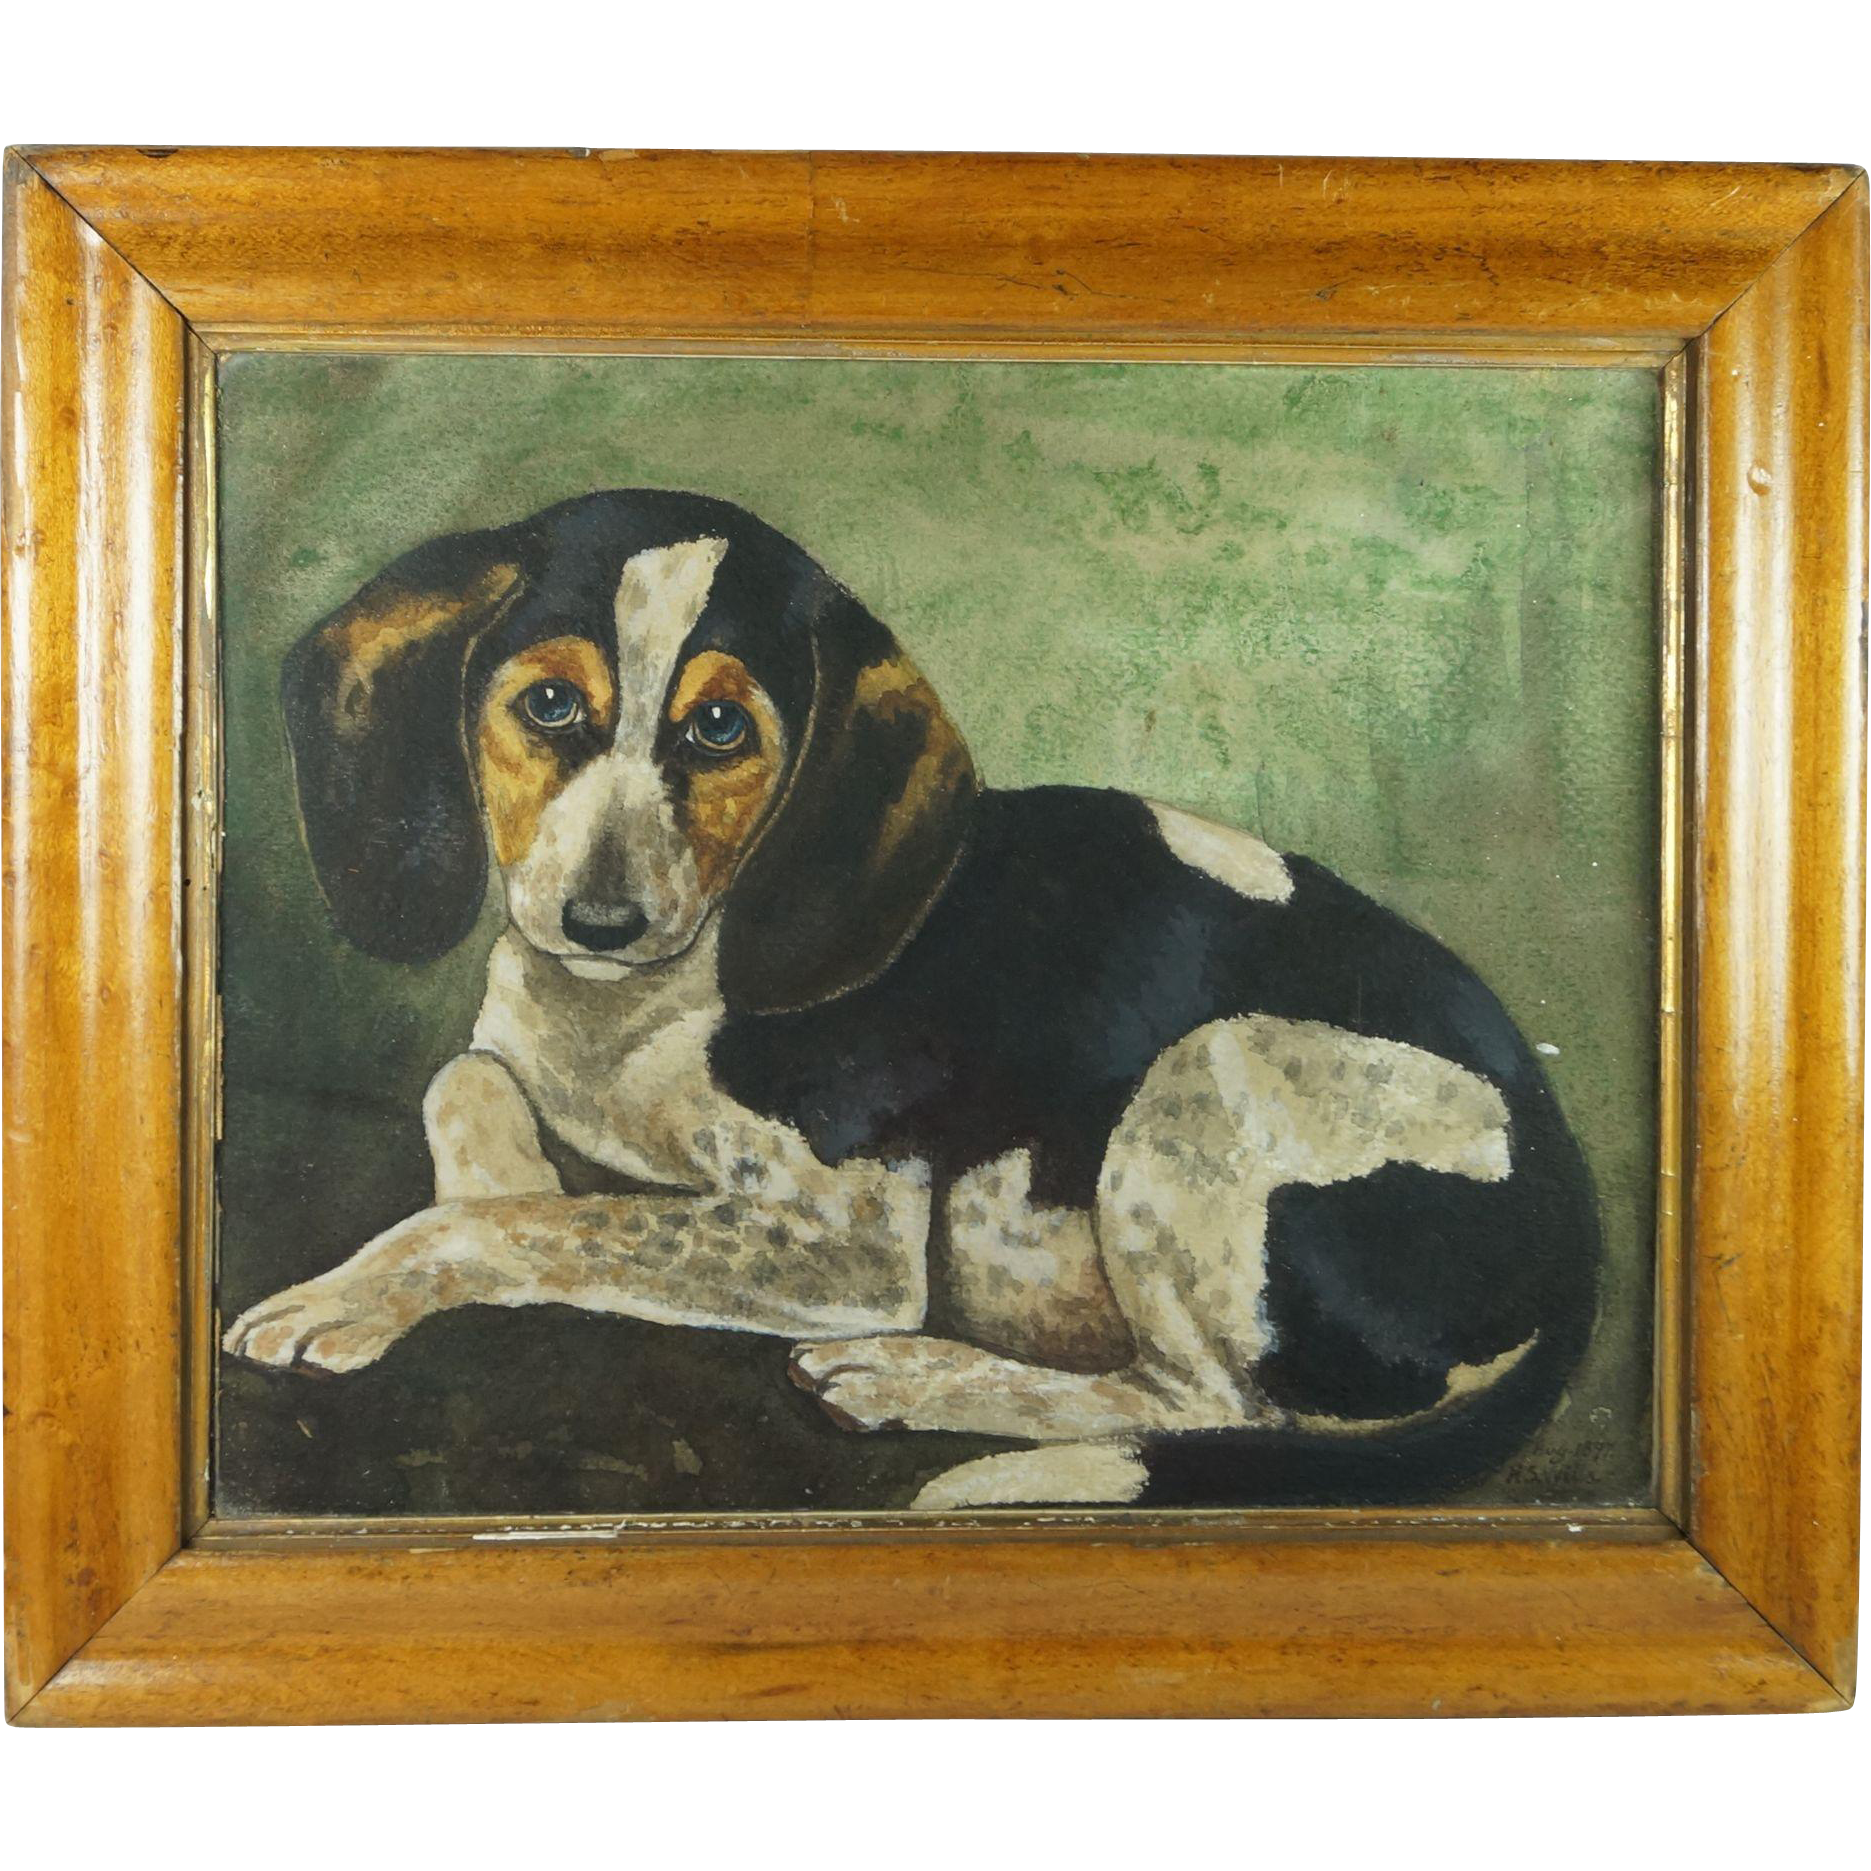 Antique 19th Century Dog Puppy Painting Signed Watercolor Portrait H S Wells 1897 English Folk Art